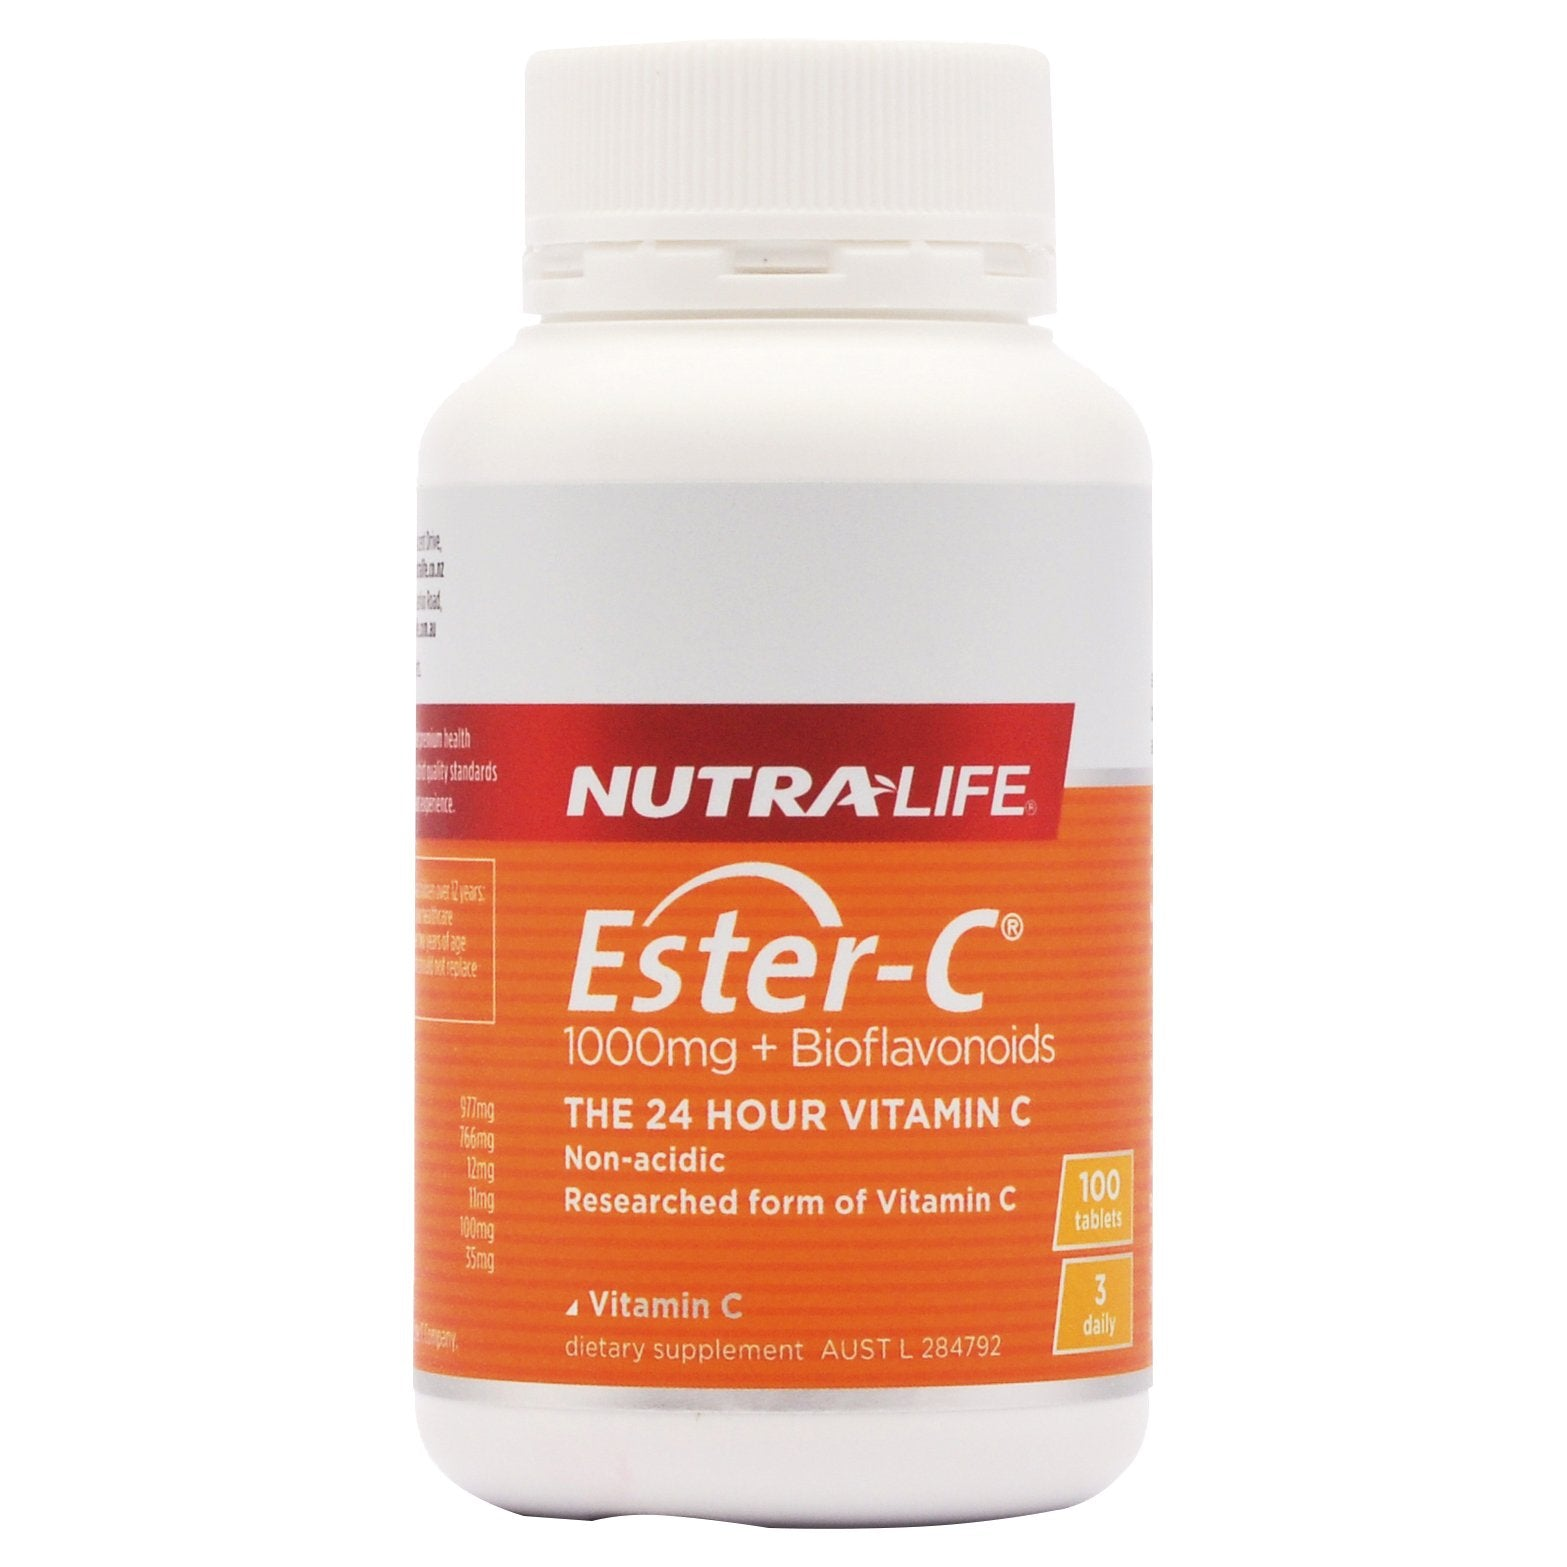 NUTRA-LIFE ESTER-C 1000MG + BIOFLAVONOIDS 100T